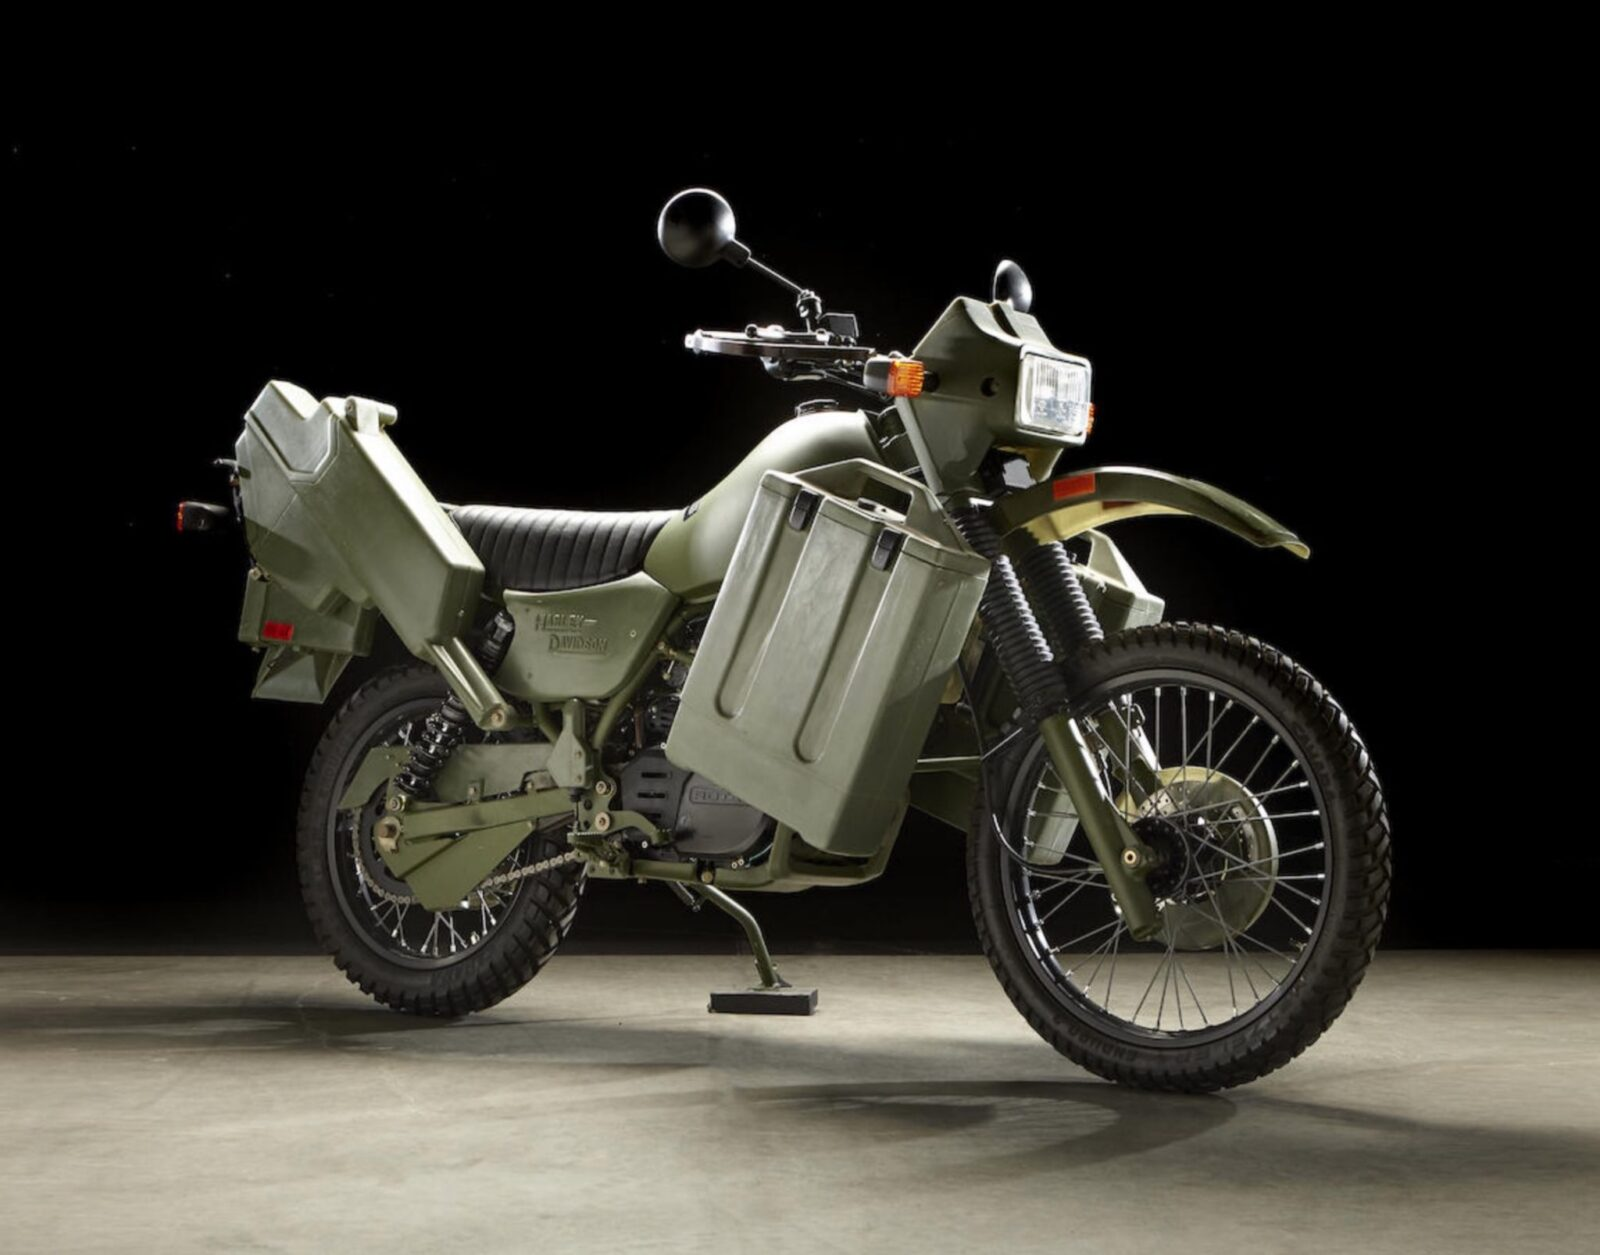 Harley Davidson MT500 6 1600x1255 - The Harley-Davidson MT500 - Everything You Need To Know